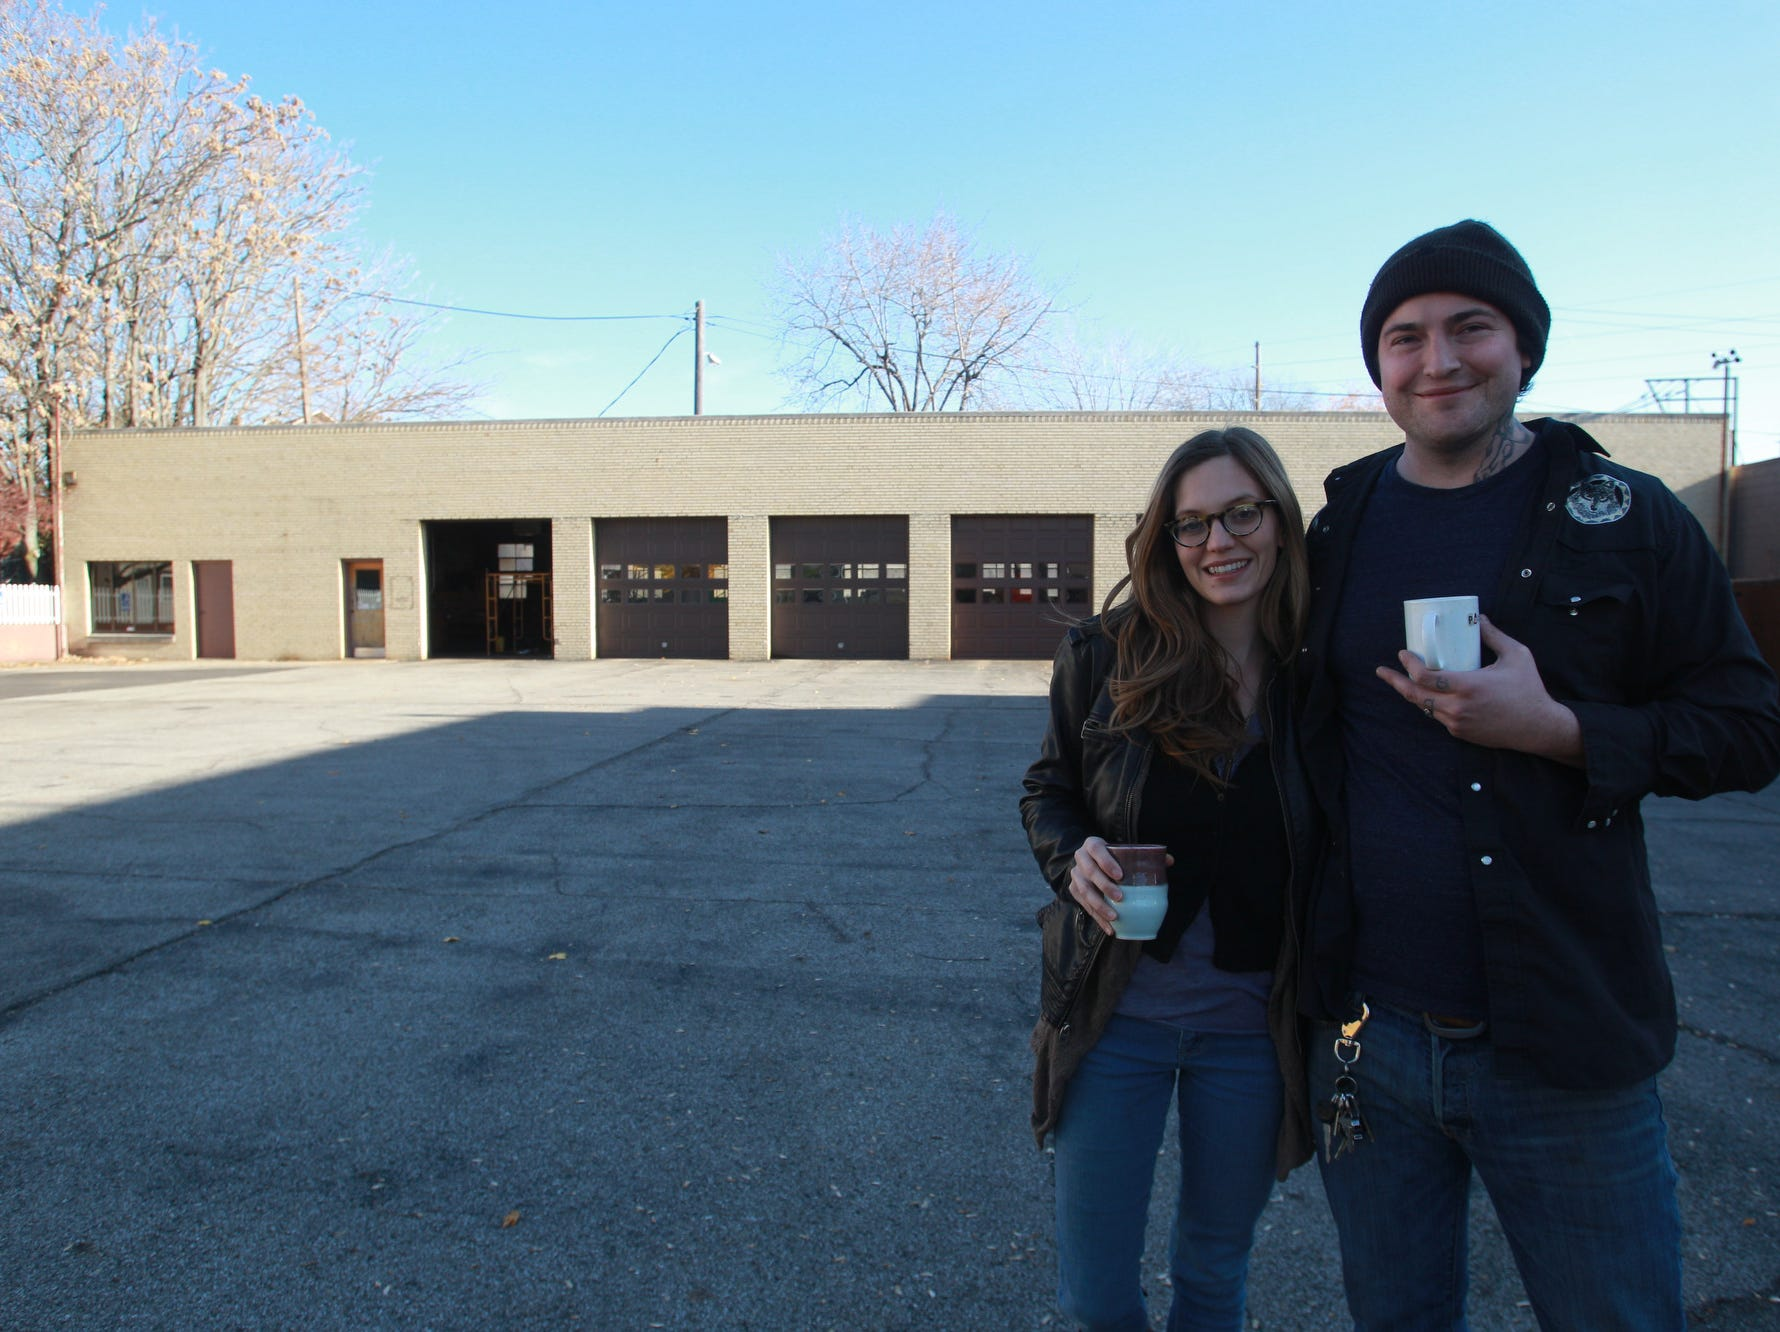 Tuesday November 19th, 2013, Jonathan Brooks and his wife Ashley Brooks stand in the parking lot of Milktooth, 540 Virginia Ave.  The future location of their fine dining, breakfast/brunch restaurant, coming in 2014.  (Michelle Pemberton/The Star)